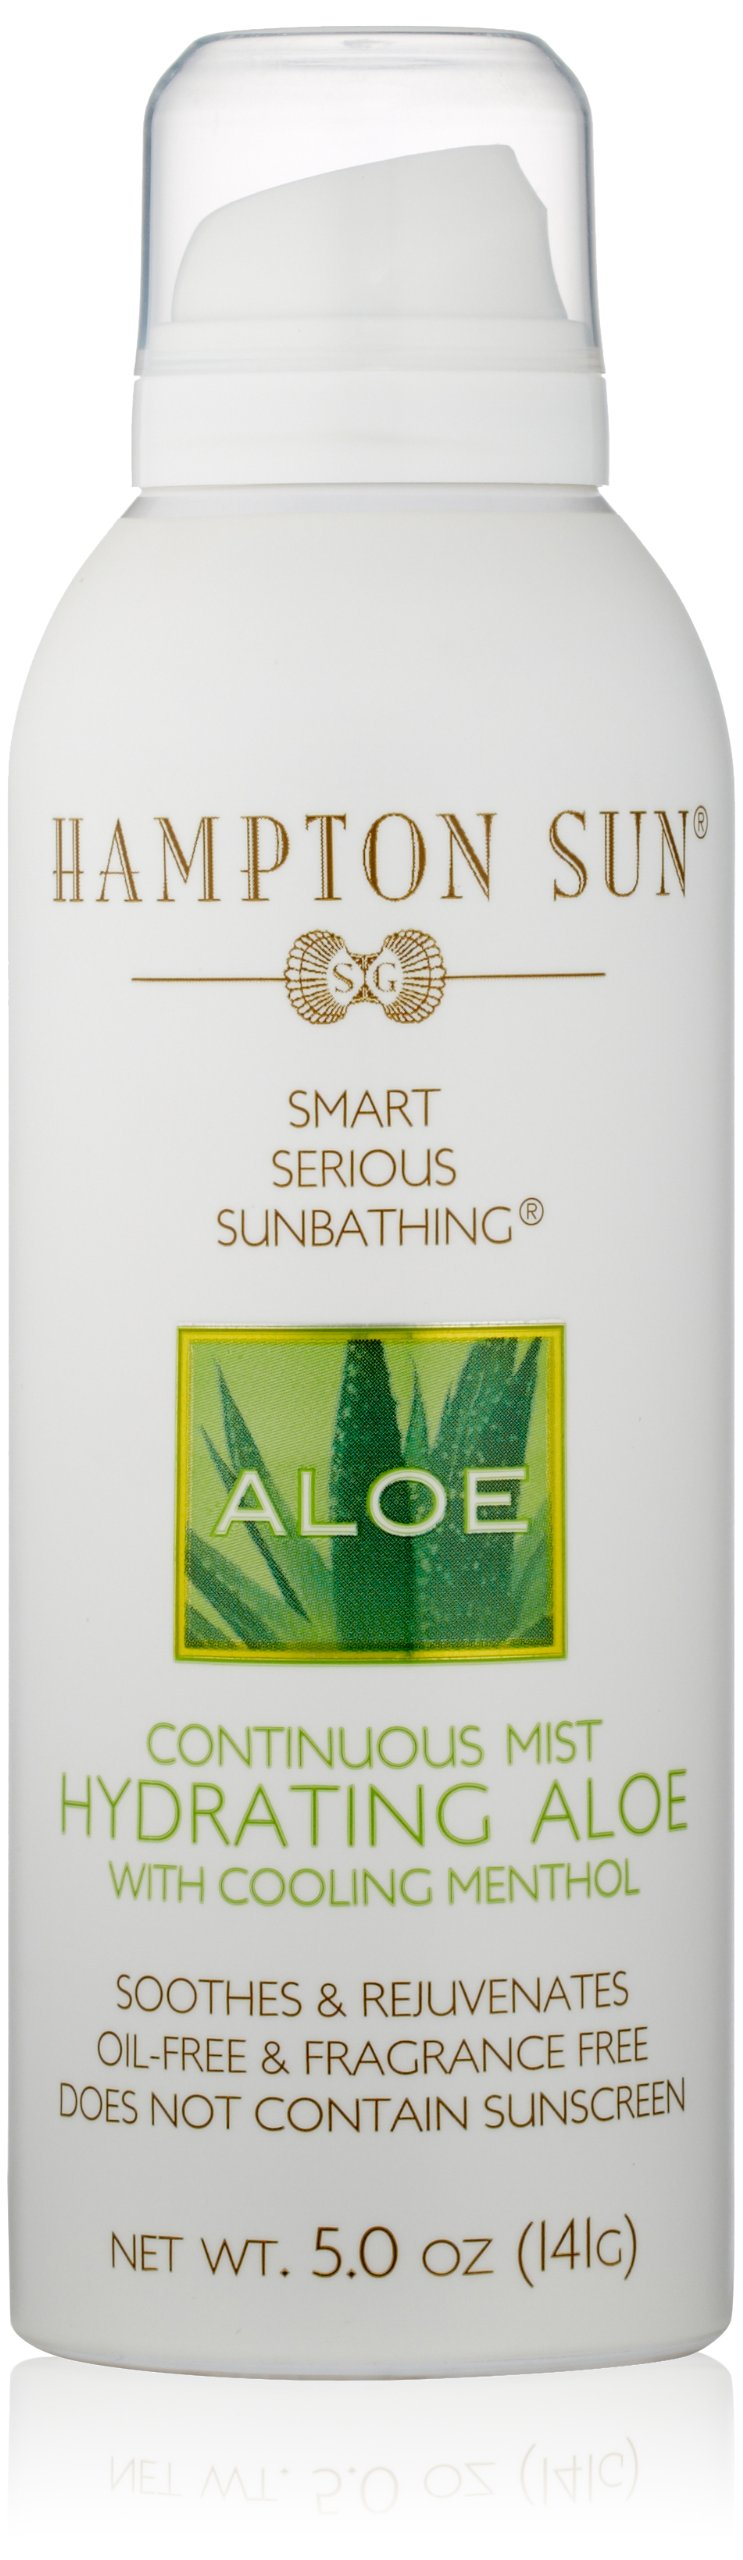 Hampton Sun Hydrating Aloe Continuous Mist, 5 oz